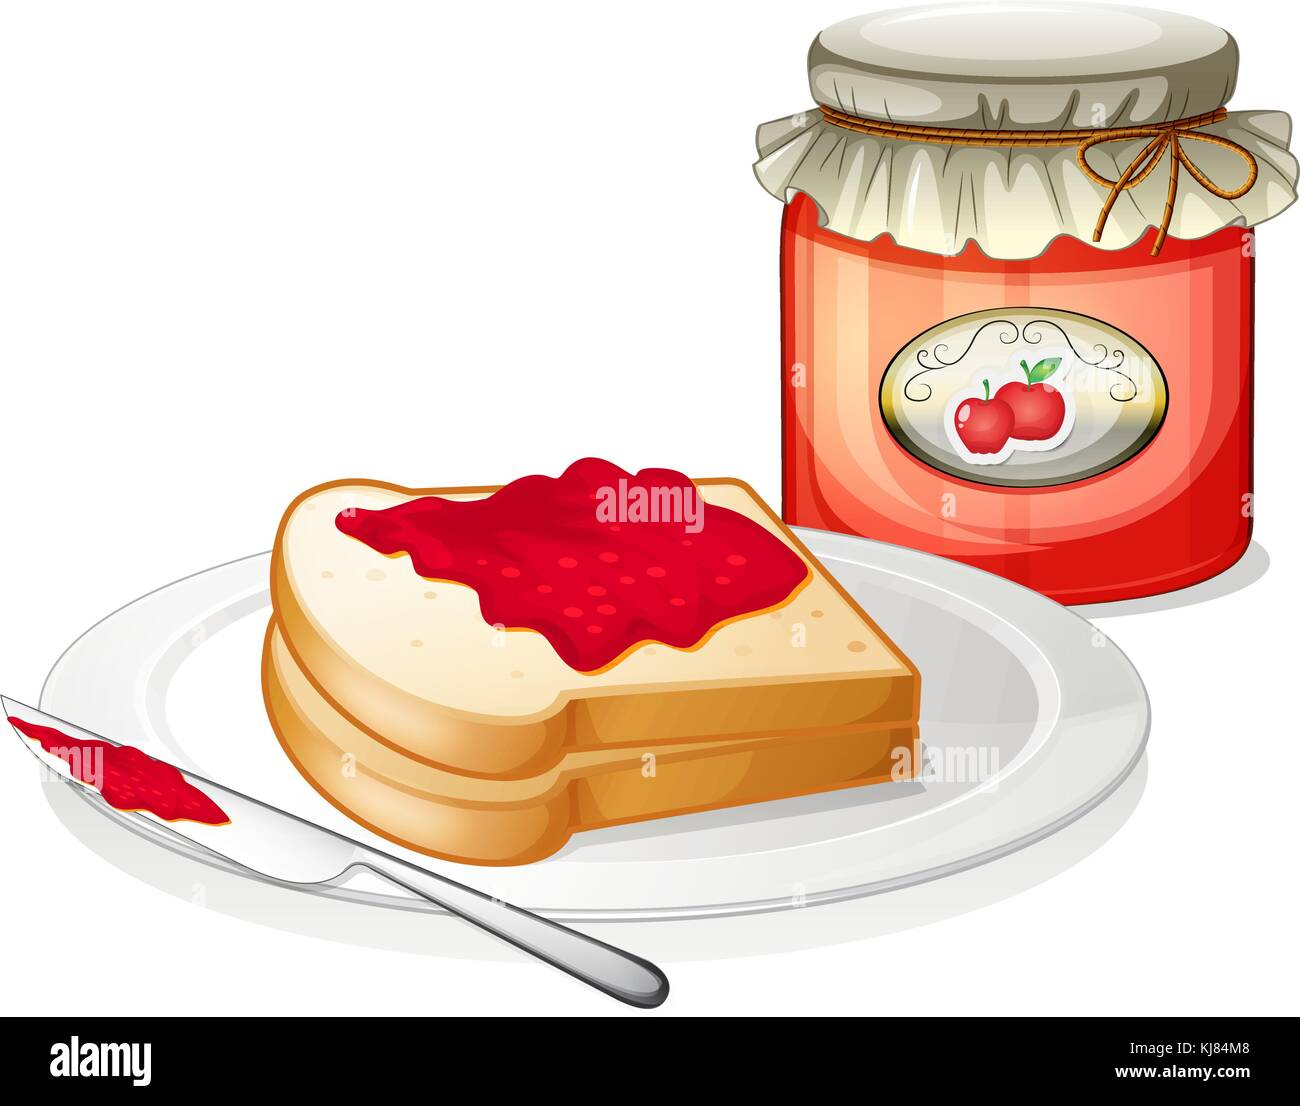 Illustration of an apple jam with a sandwich in the plate on a white background - Stock Vector